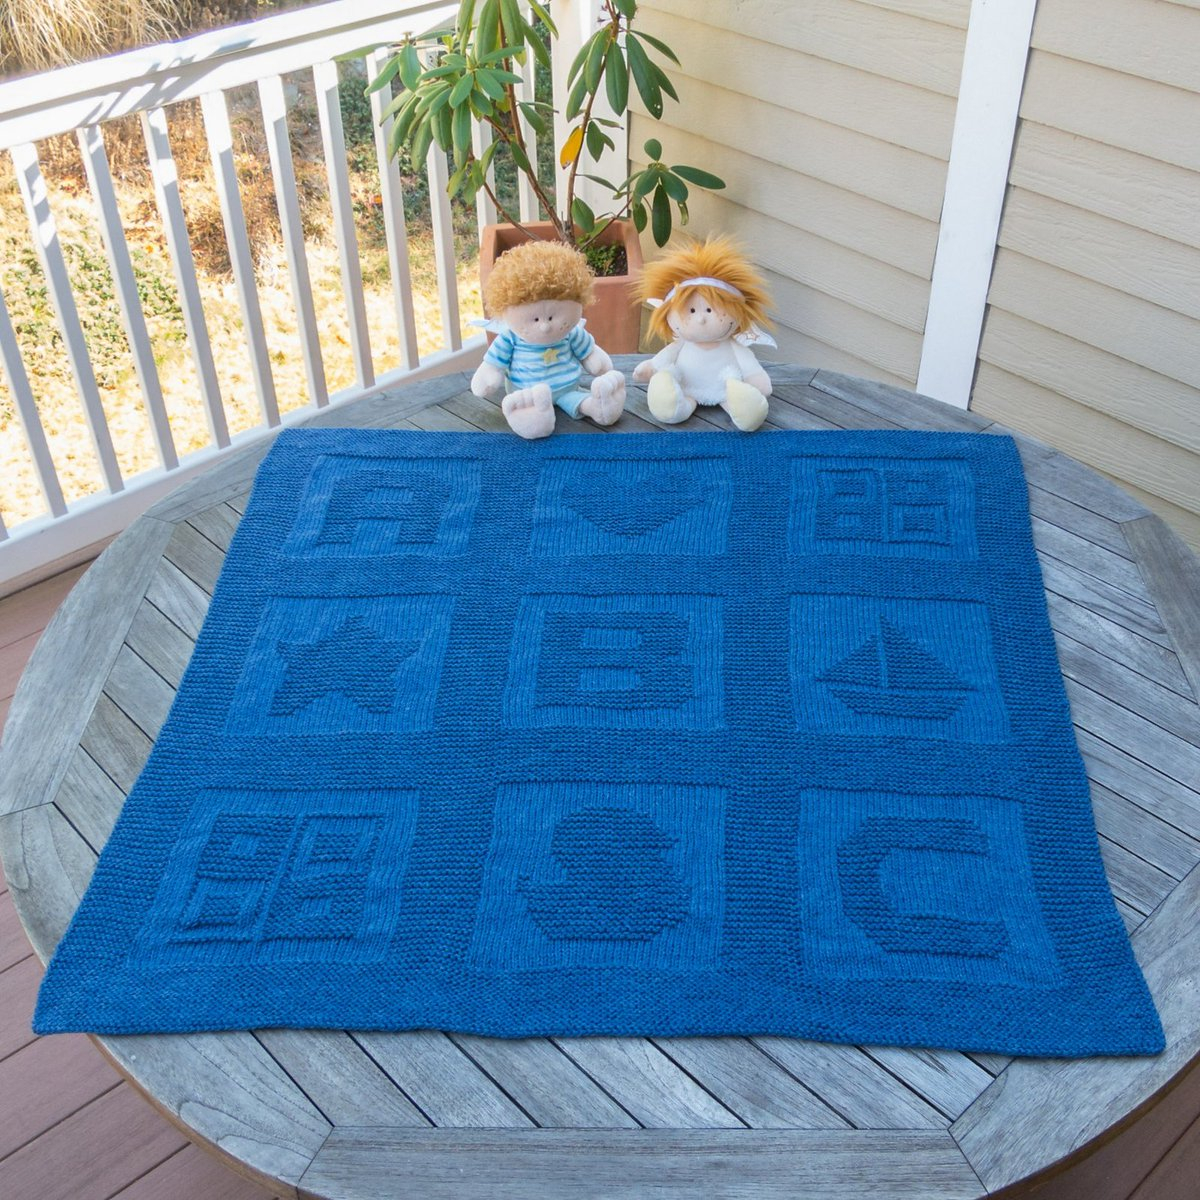 Free Knitting Patterns For Baby Blankets Terry Matz On Twitter Free Knitting Pattern For Easy As Abc Ba